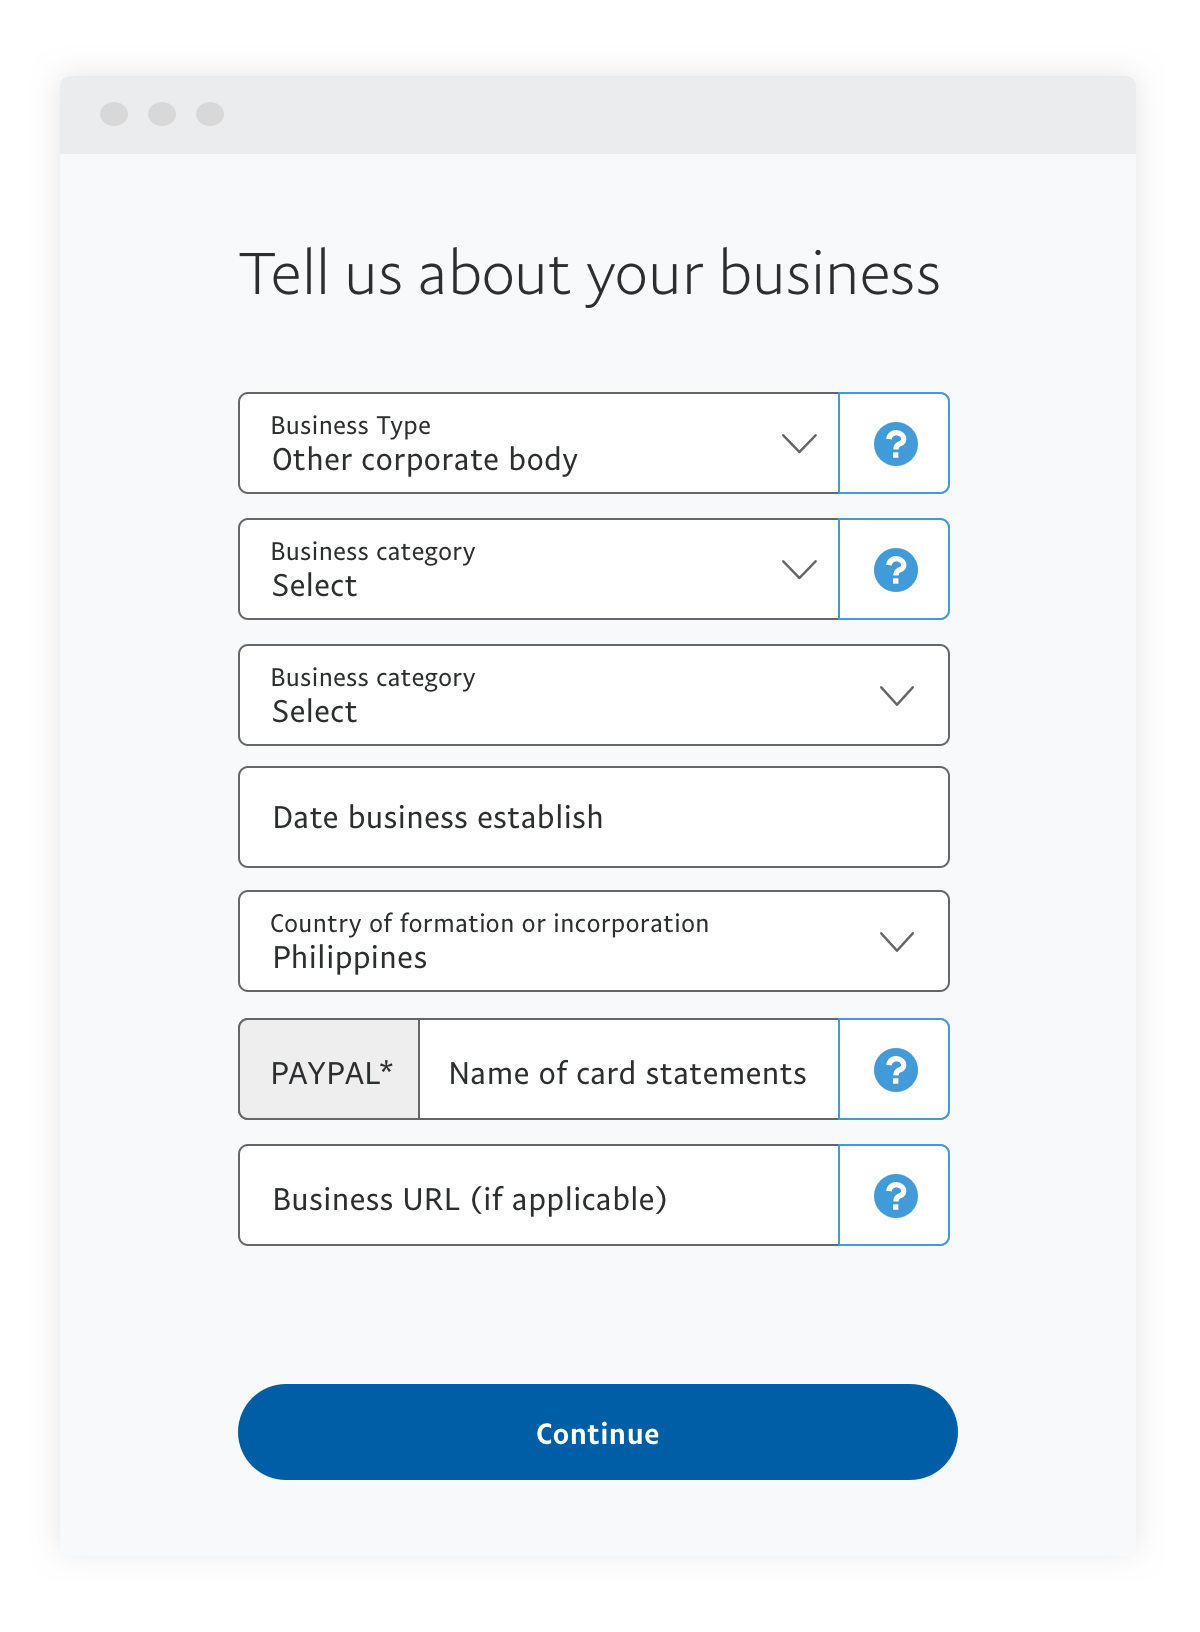 Tell us about your business step 1.2